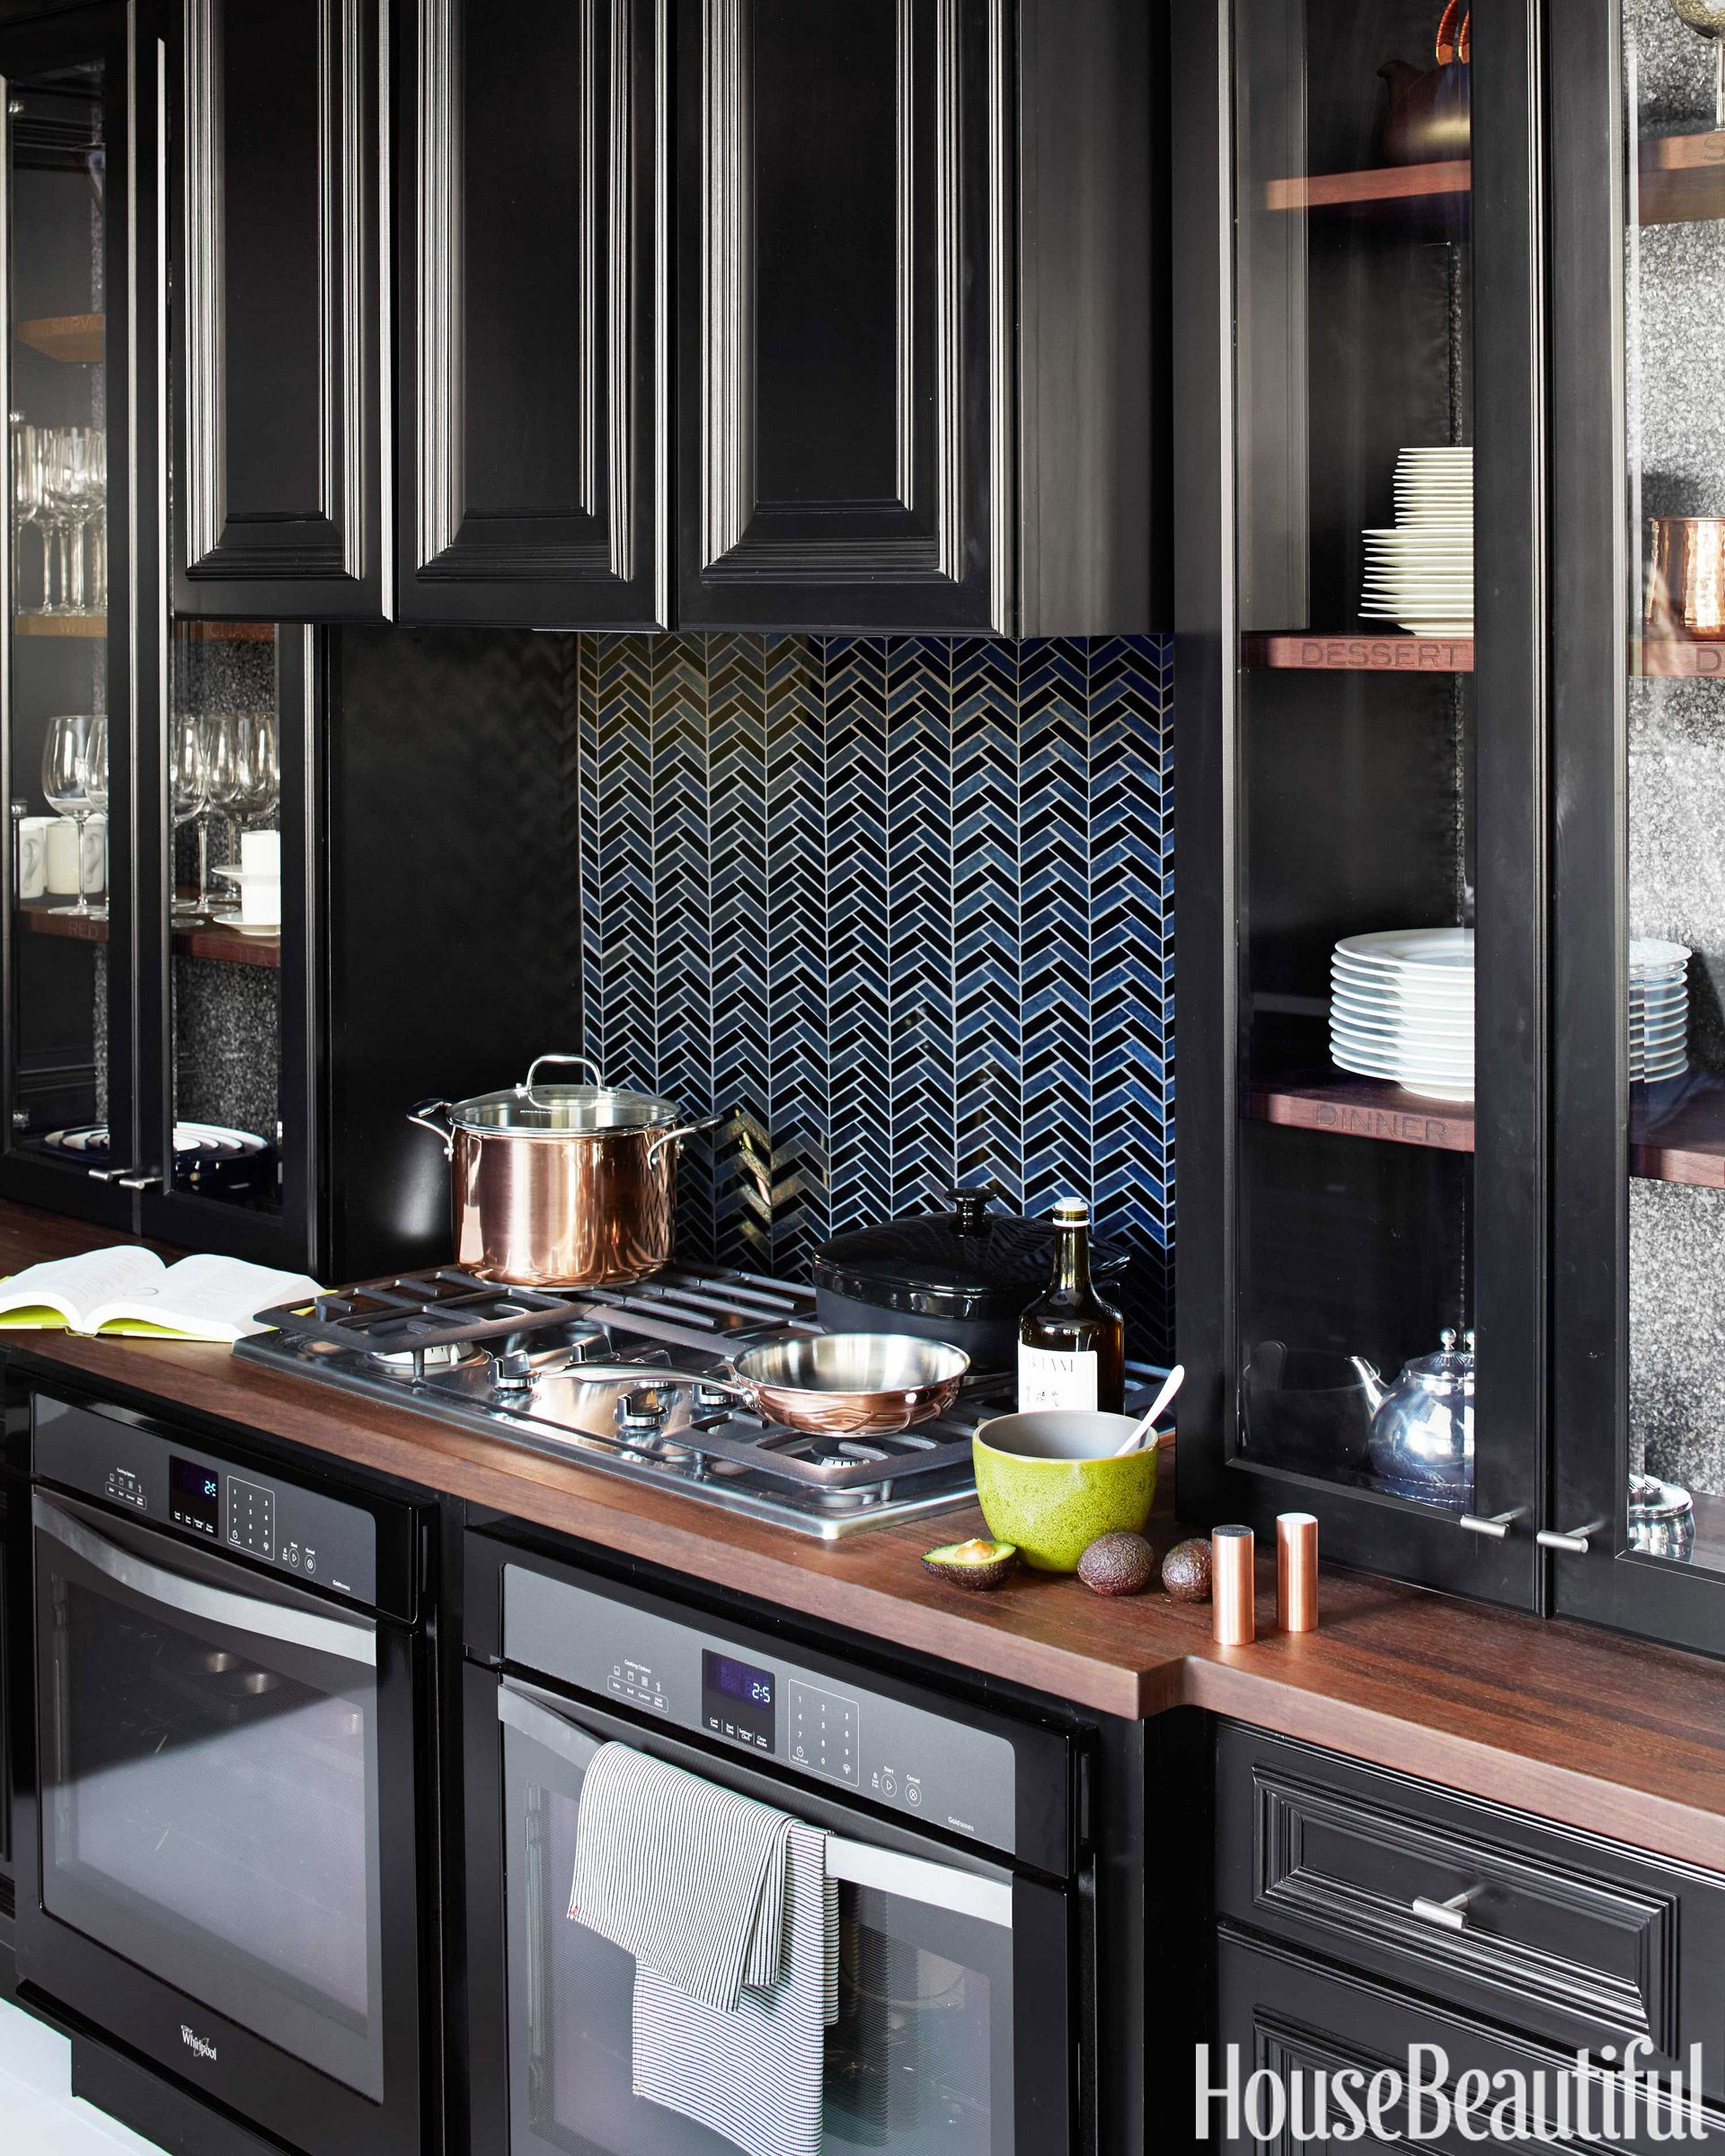 Steven Miller on Designing the 2014 Kitchen of the Year